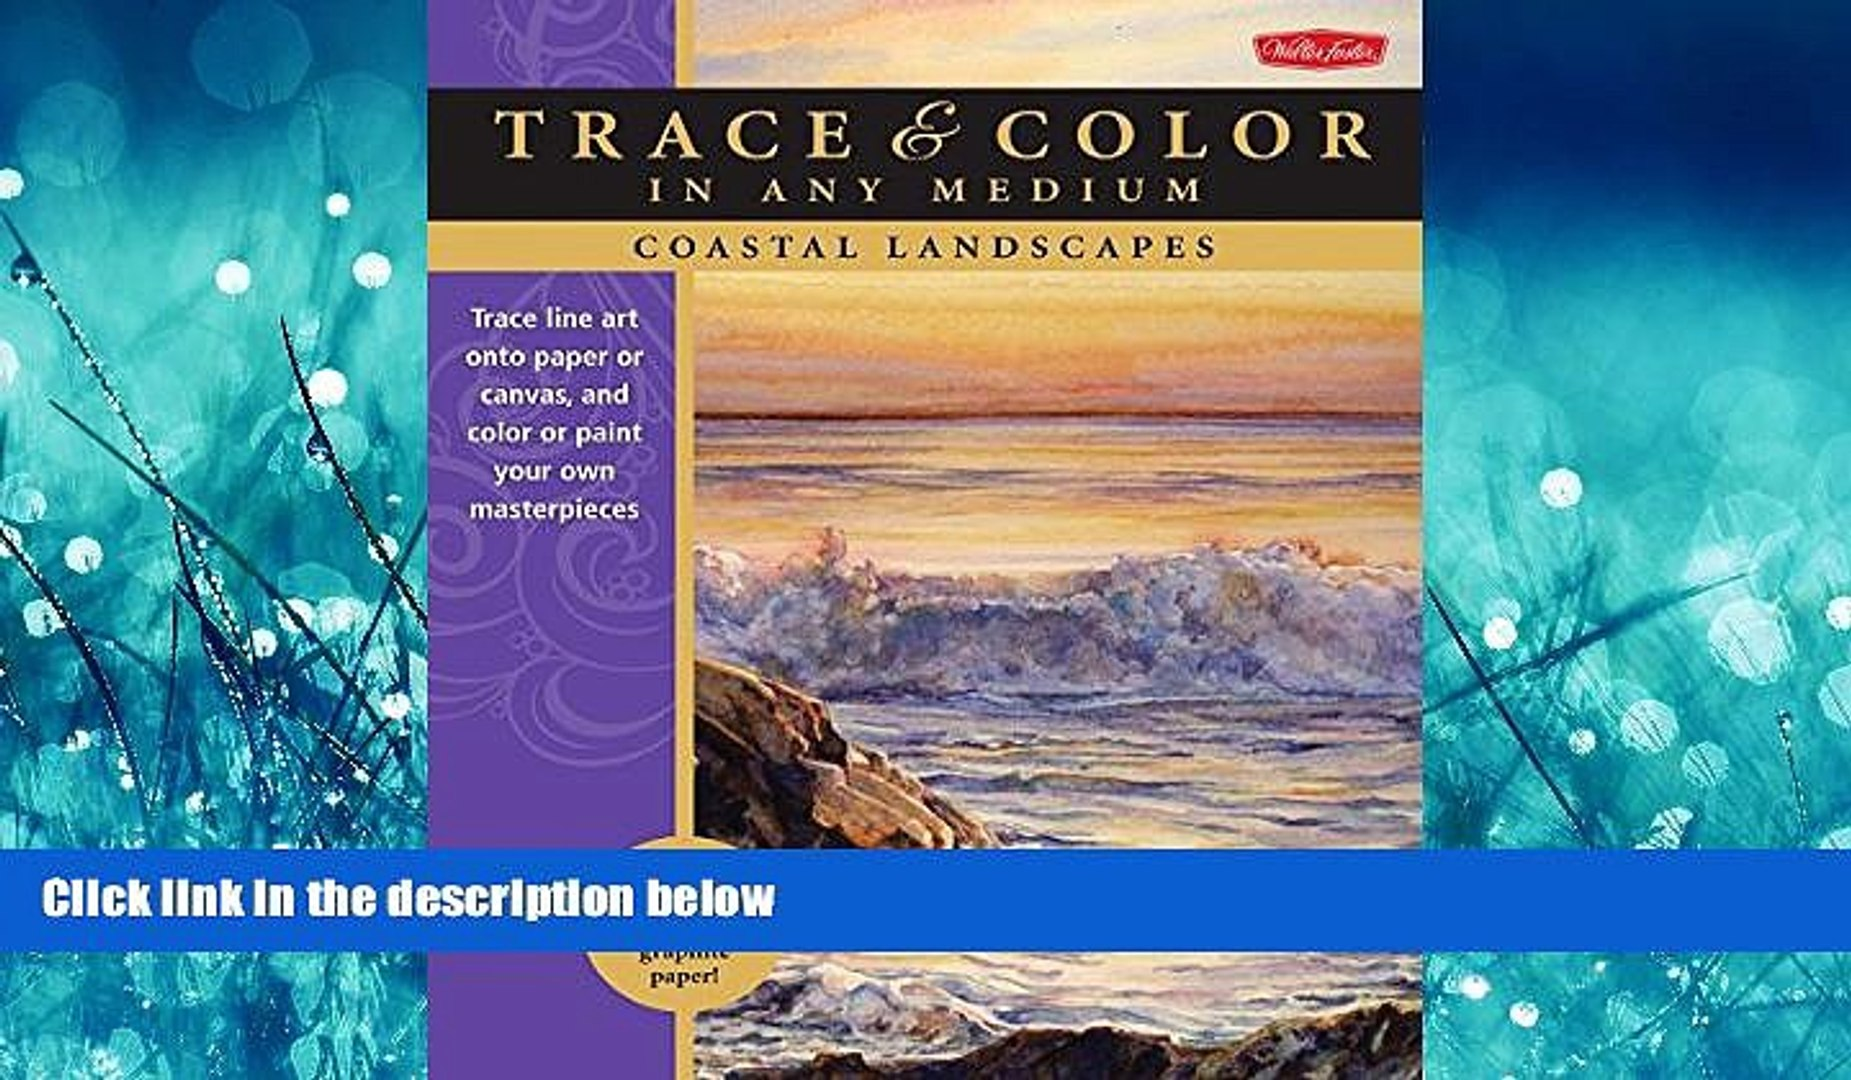 FREE PDF Coastal Landscapes: Trace line art onto paper or canvas, and color  or paint your own